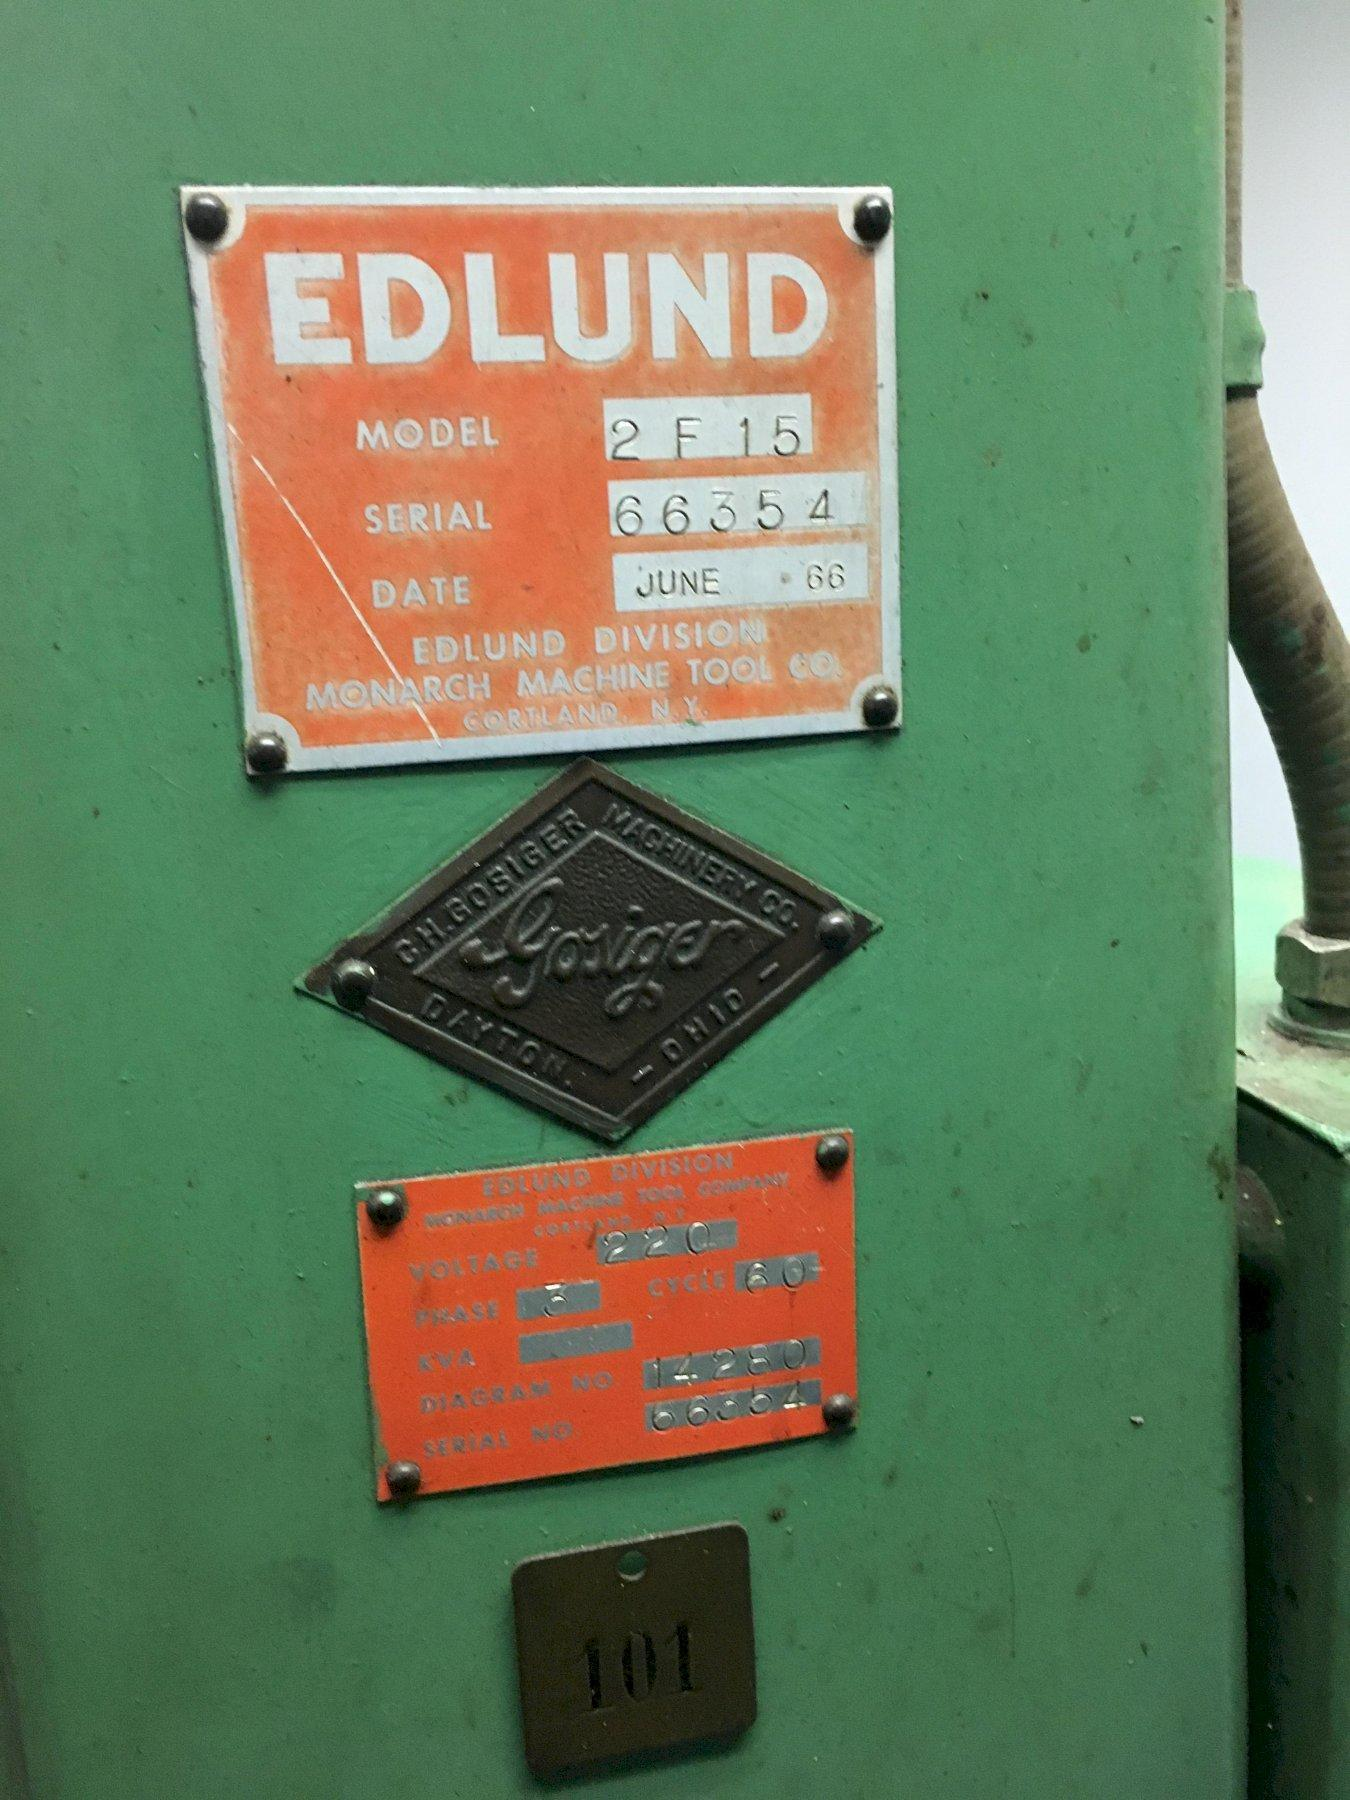 Edlund Model 2F-15 Drill Press, S/N 66354, with Motor Reversing Tapping Attachment.